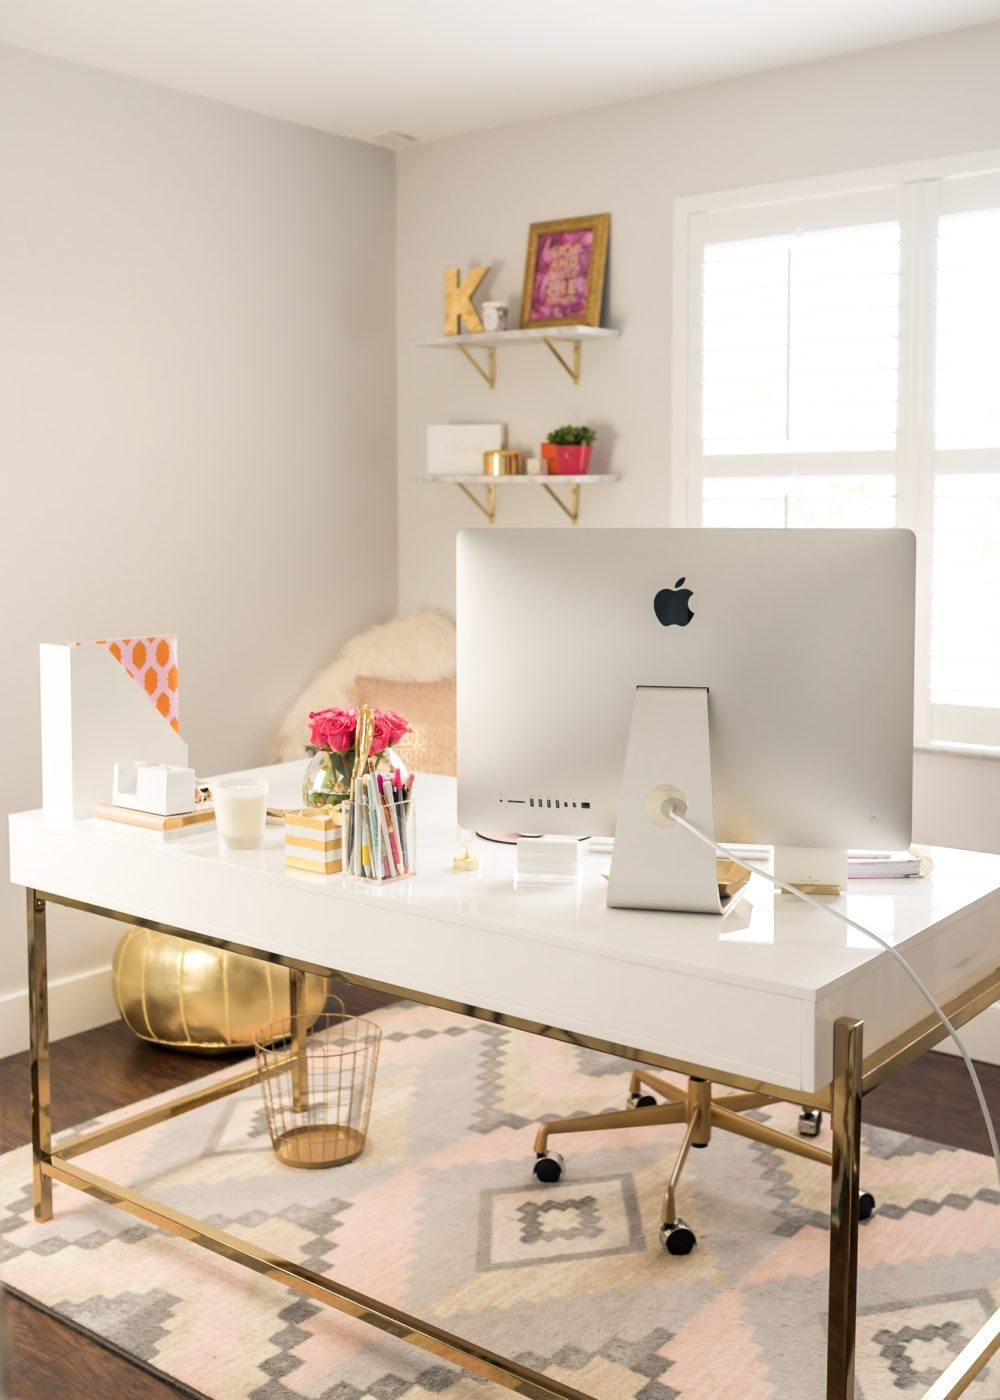 Home Design Business Ideas: Home Office Space, Home Office